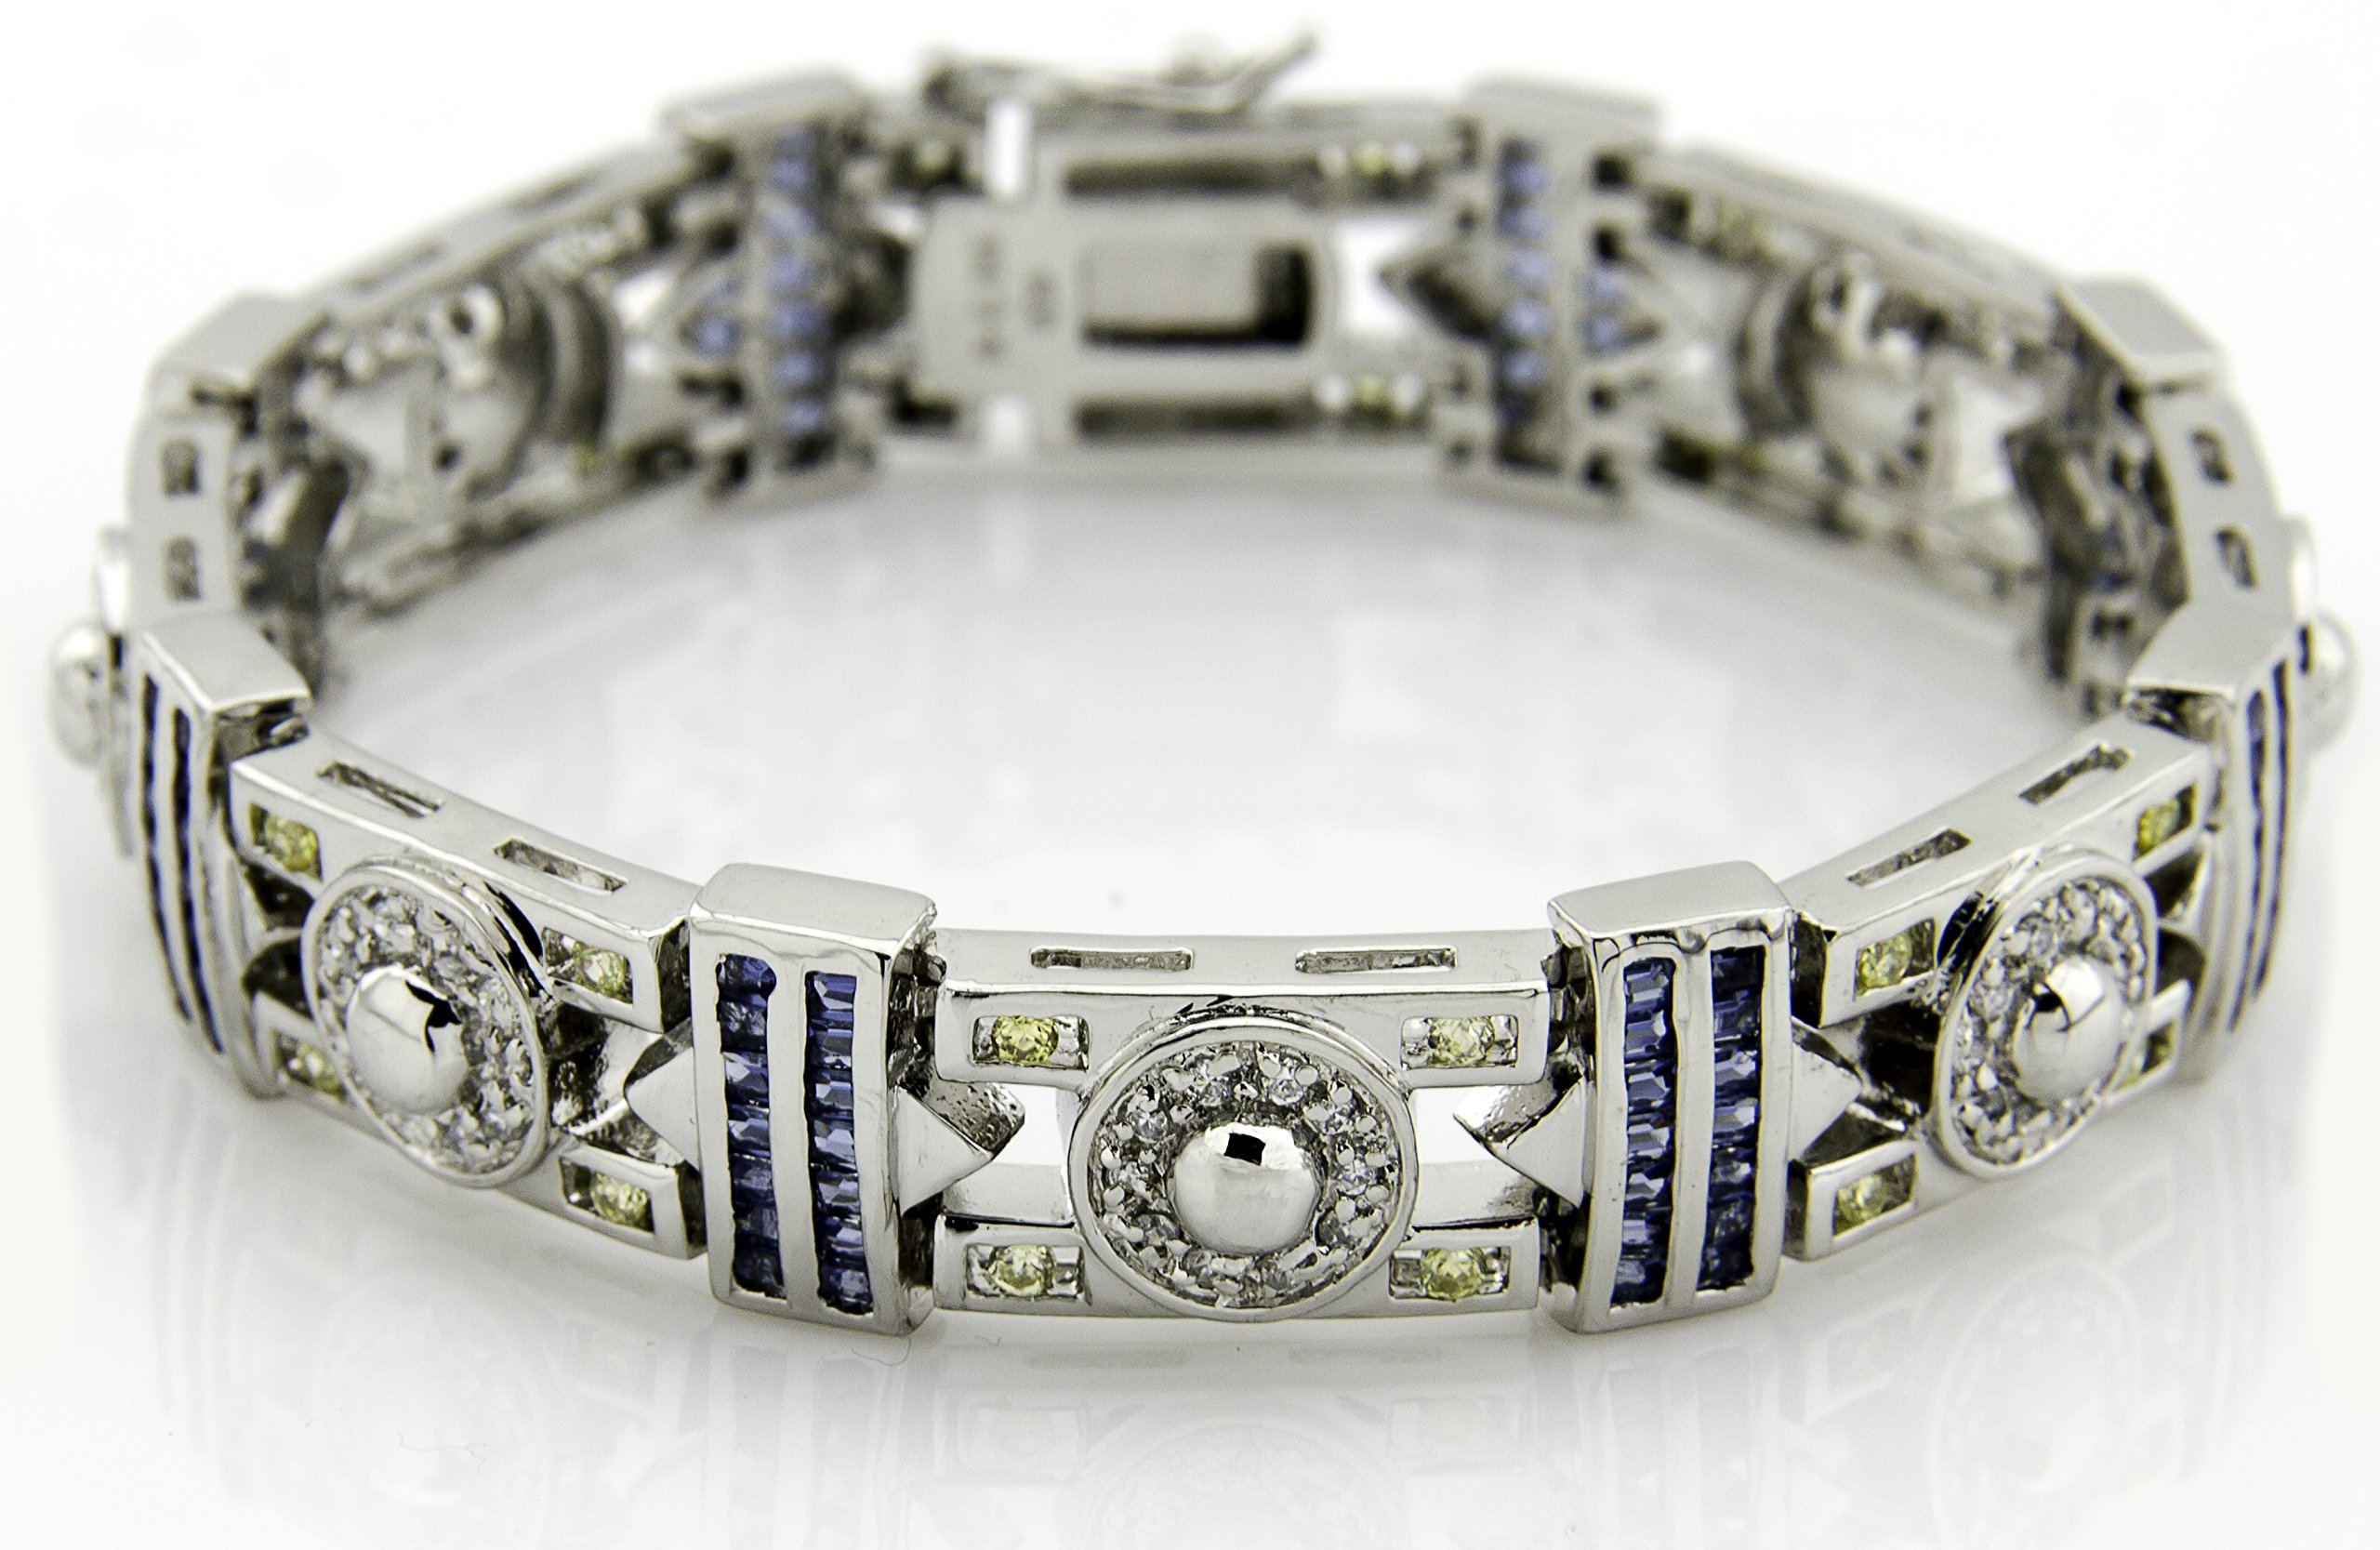 Men's Sterling Silver .925 Original design Bracelet with 126 blue baguette, 36 yellow round, and 90 white round Cubic Zirconia (CZ) Stones and Box Lock, Platinum Plated. Sizes available 8'' 9'' by Sterling Manufacturers